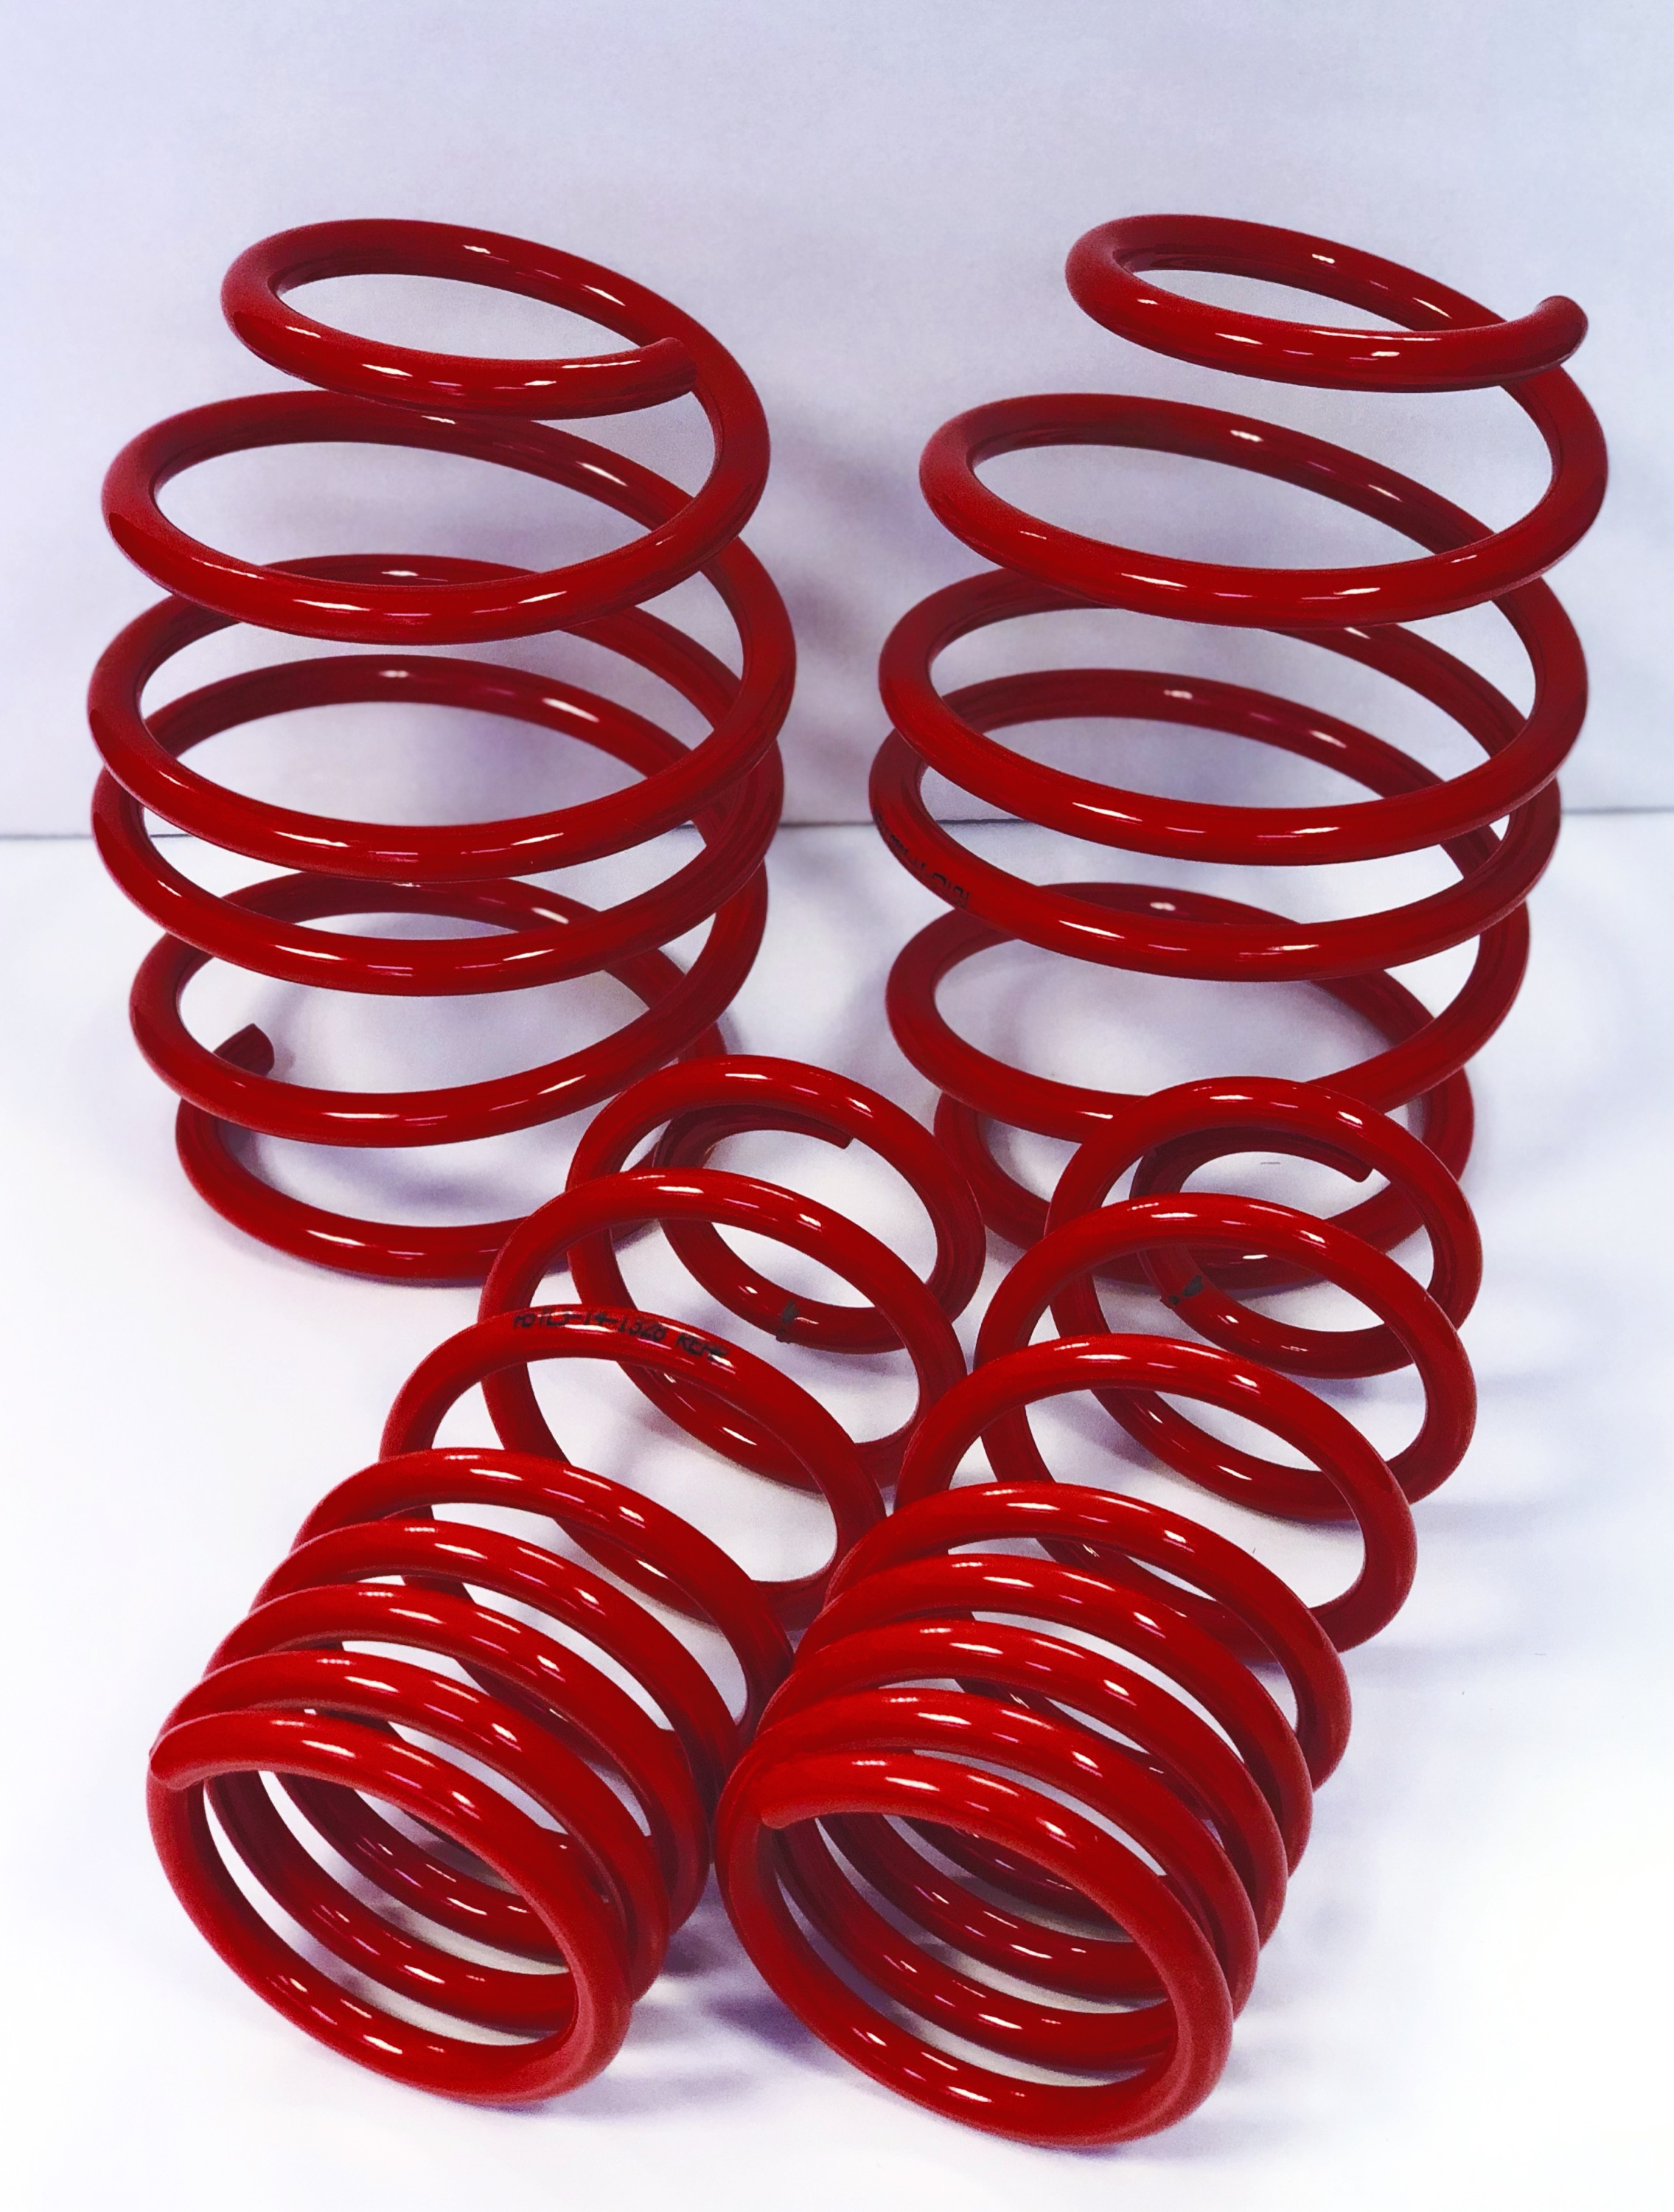 Peugeot 508 AST Suspension Lowering Springs 30/25